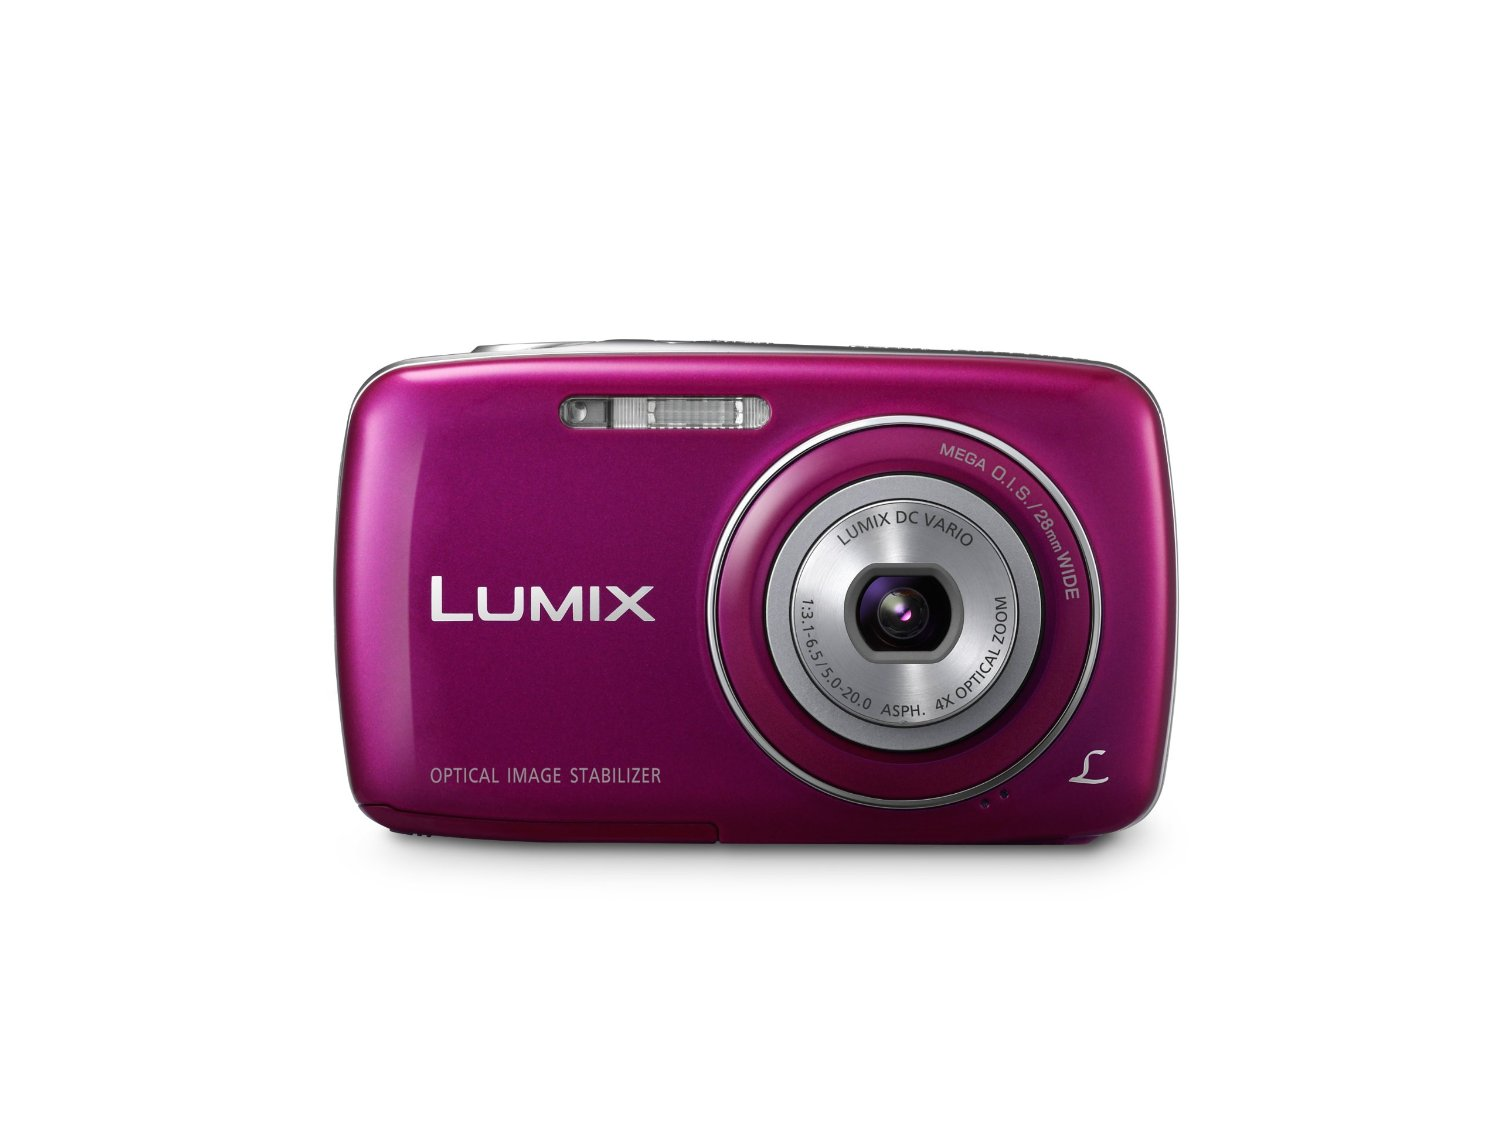 Panasonic Lumix DMC-S3 14.1 MP Digital Camera with 4x Optical Image Stabilized Zoom with 2.7-Inch LCD (Violet)